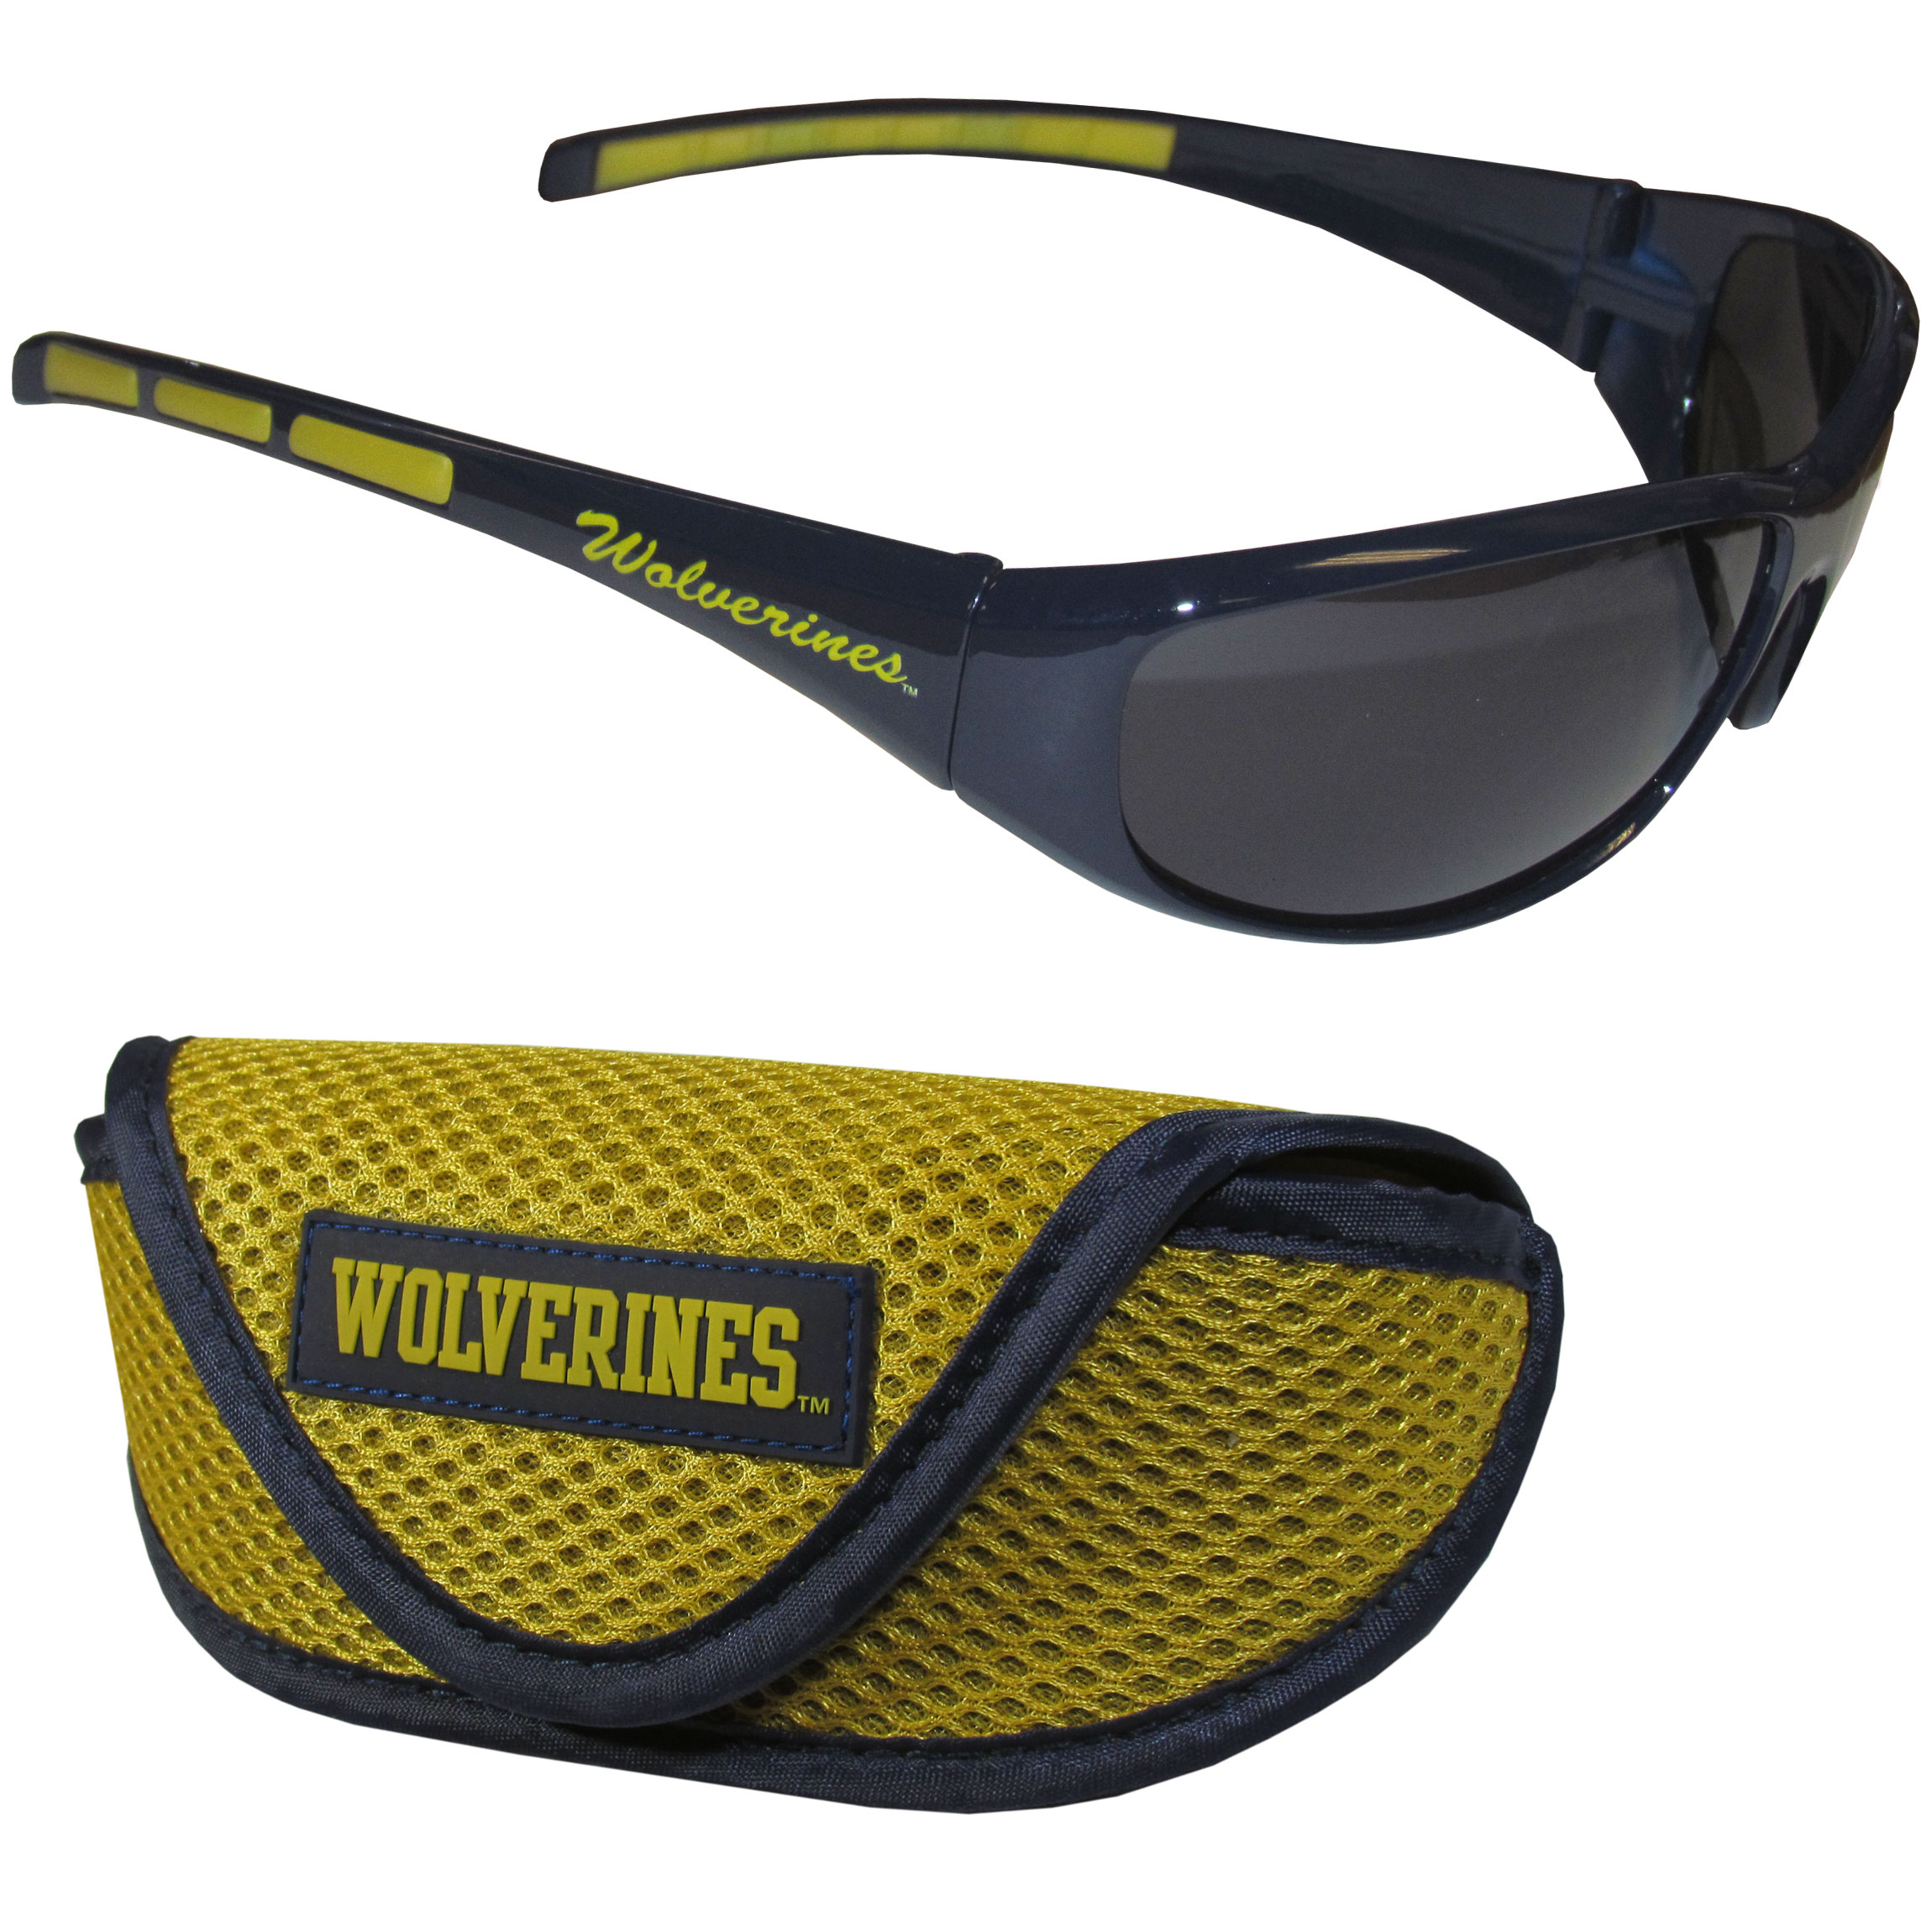 Michigan Wolverines Wrap Sunglass and Case Set - This great set includes a high quality pair of Michigan Wolverines wrap sunglasses and soft sport carrying case.